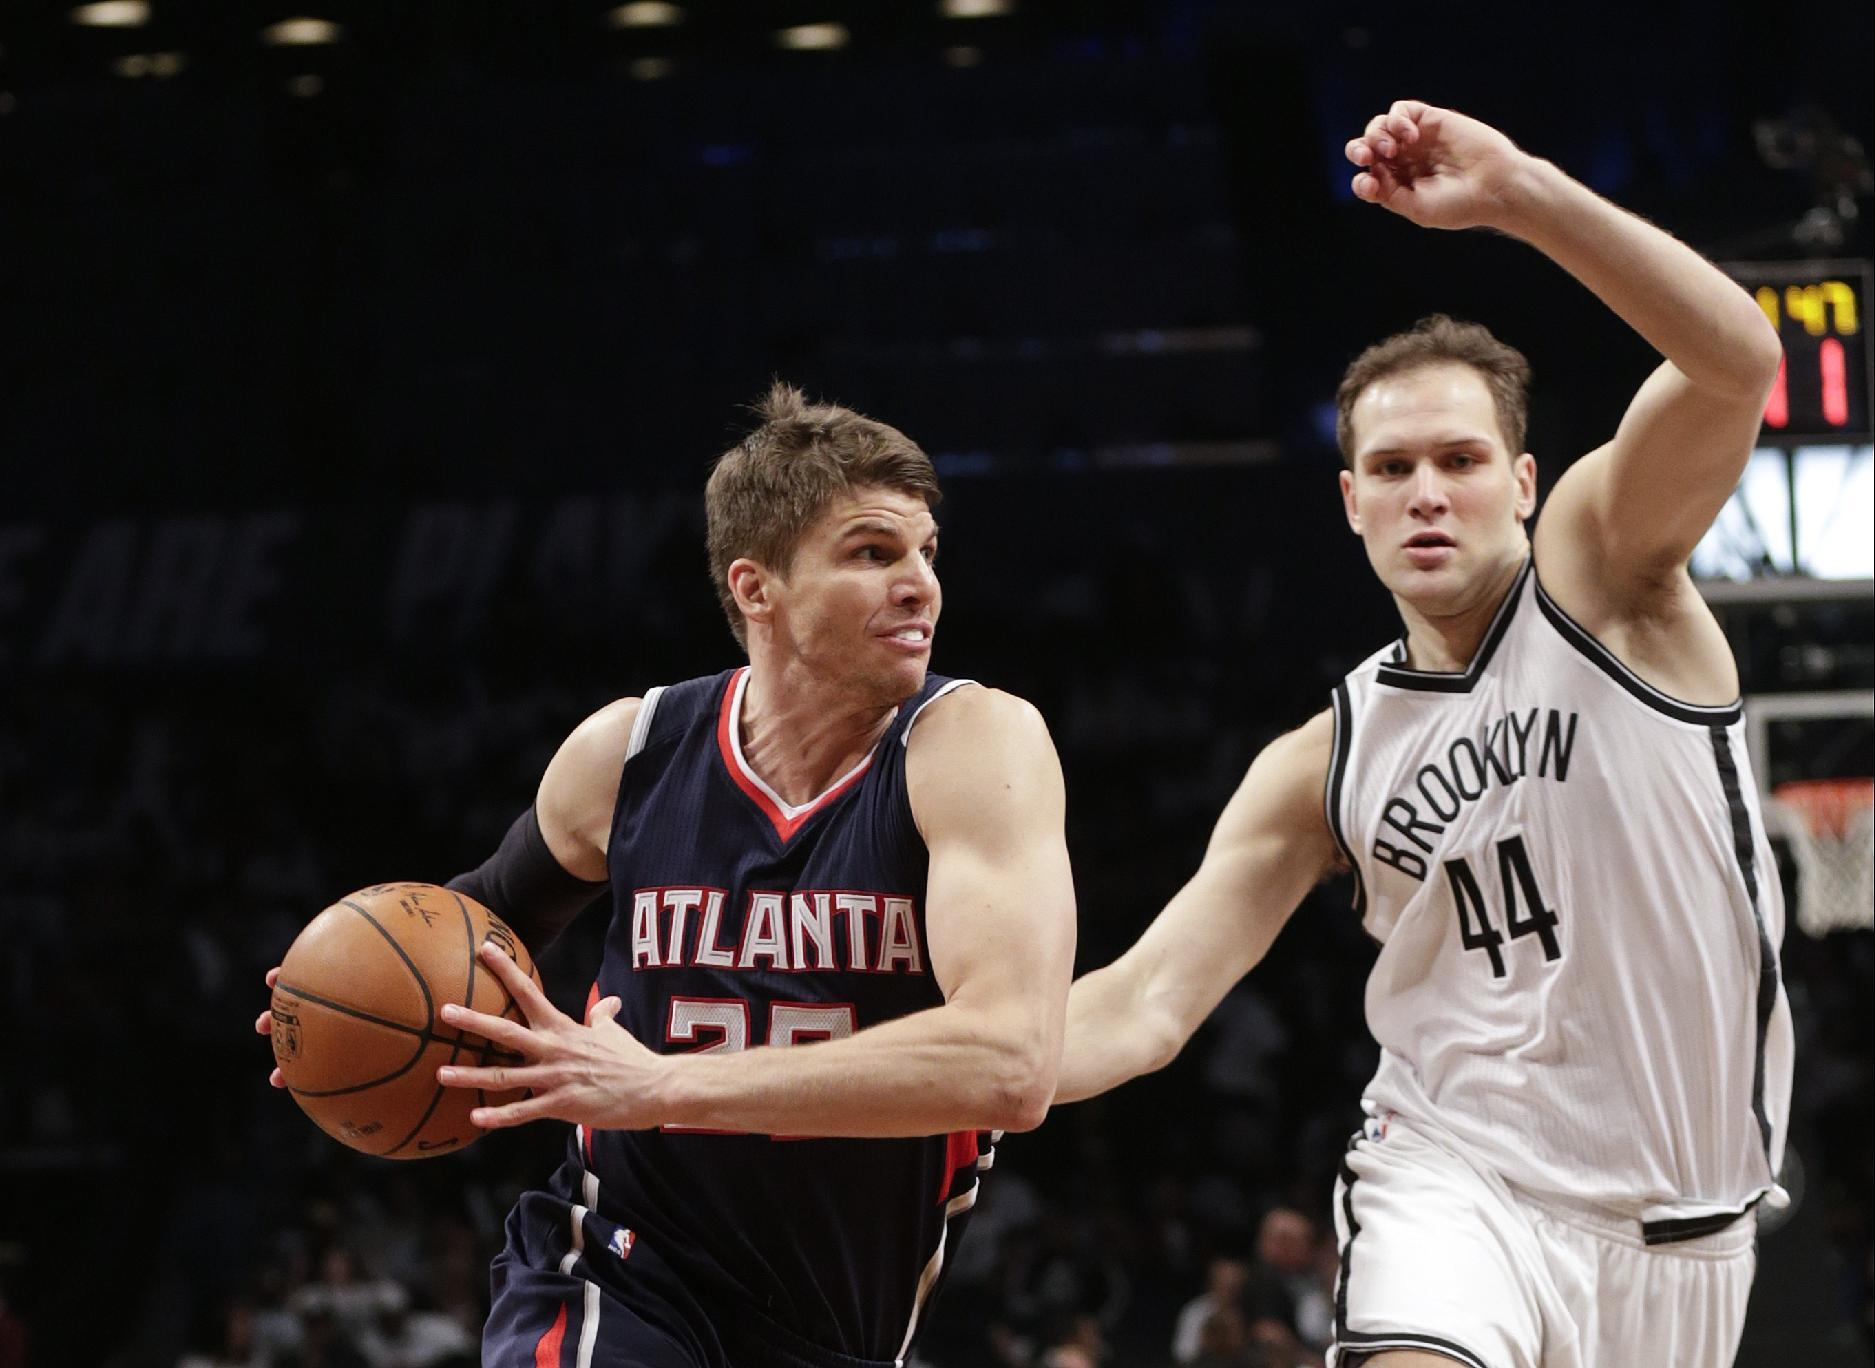 Hawks beat Nets 111-87 to wrap up series in Game 6